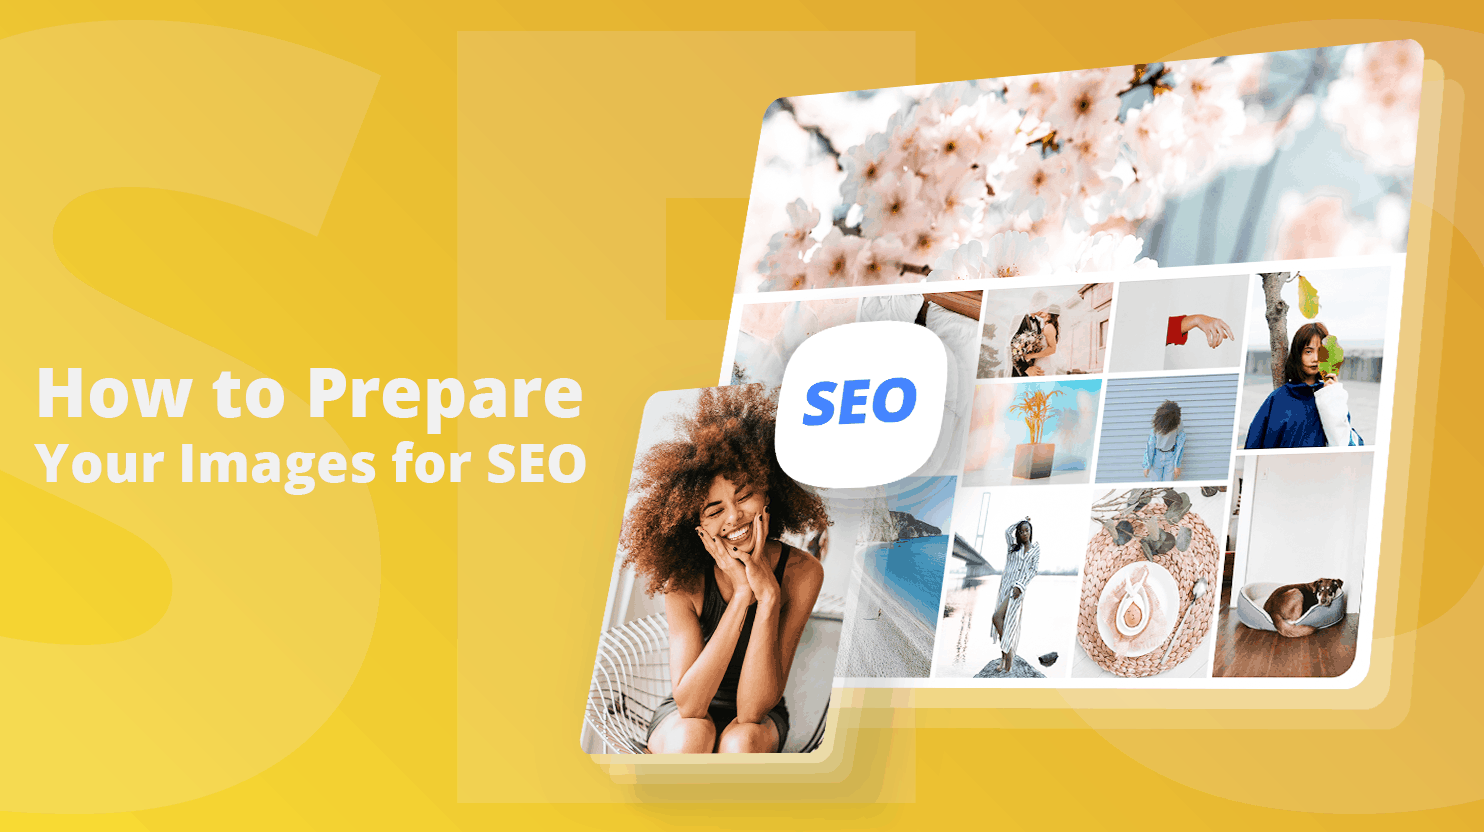 How to prepare your images for SEO